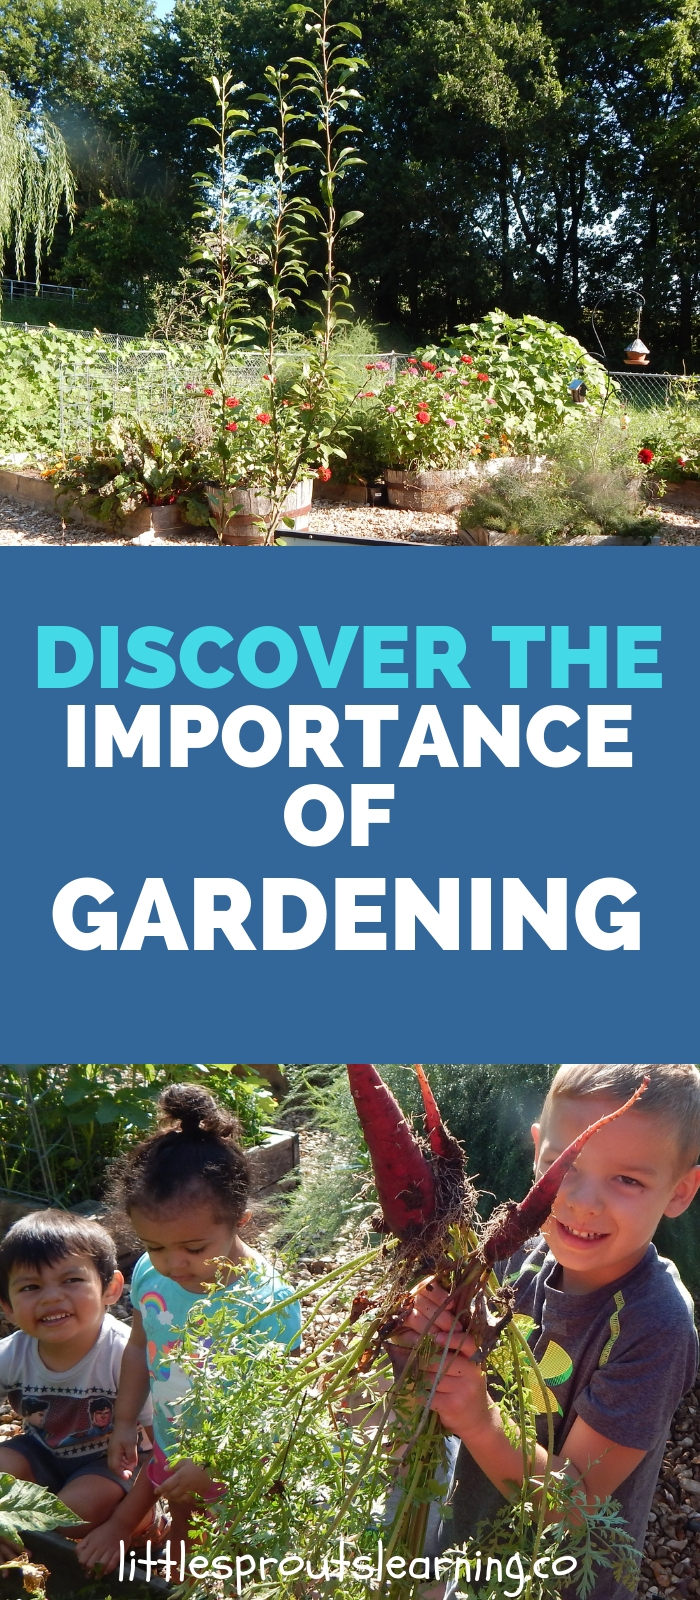 Enjoy Gardening Without The Breaking Your Back With This: Discover The Importance Of Gardening